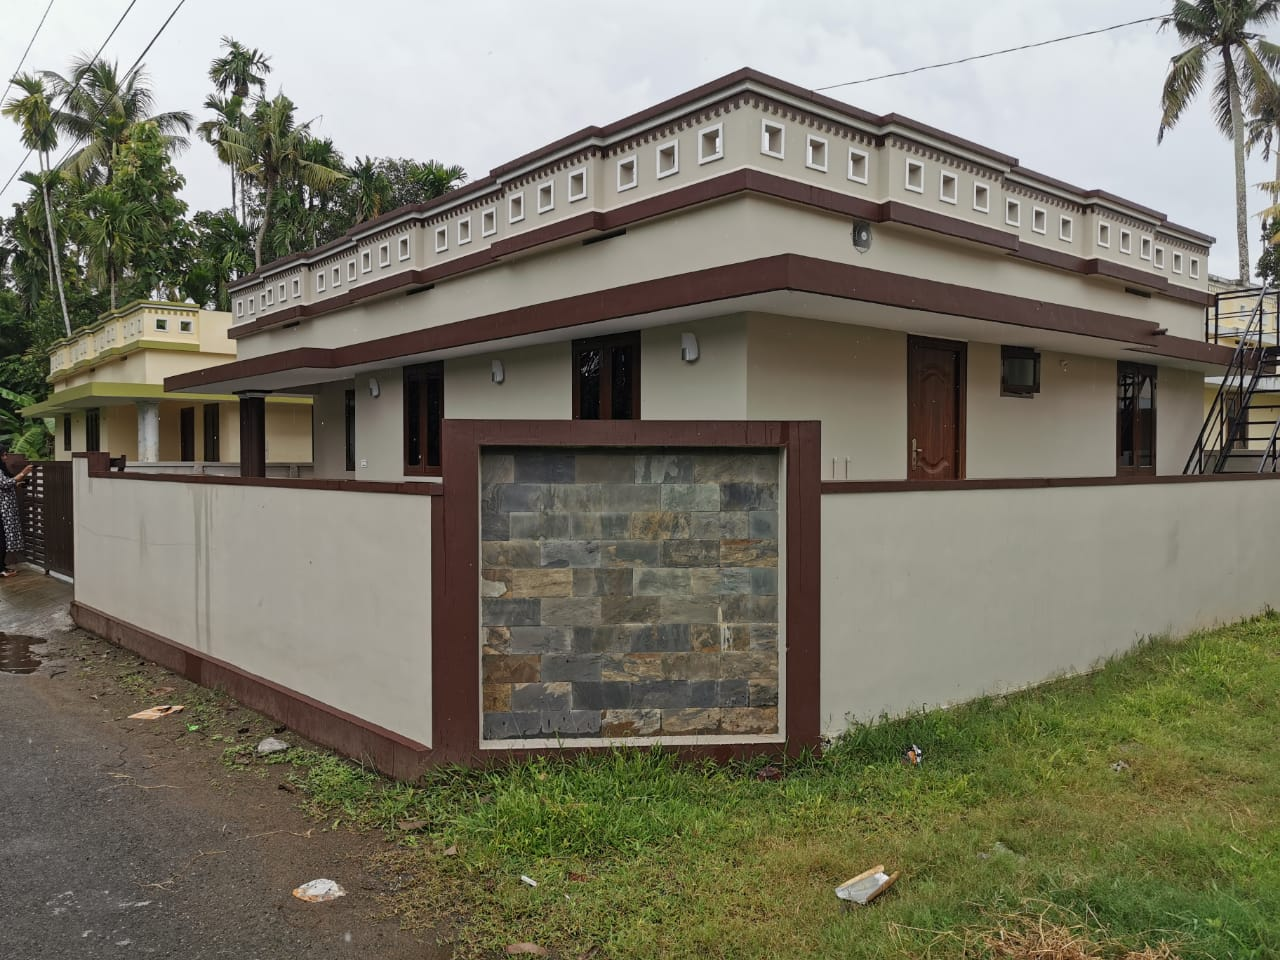 3 BHK, 1100 Sq. Ft Villa For Sale In Paravur, Chendamangalam, Kochi